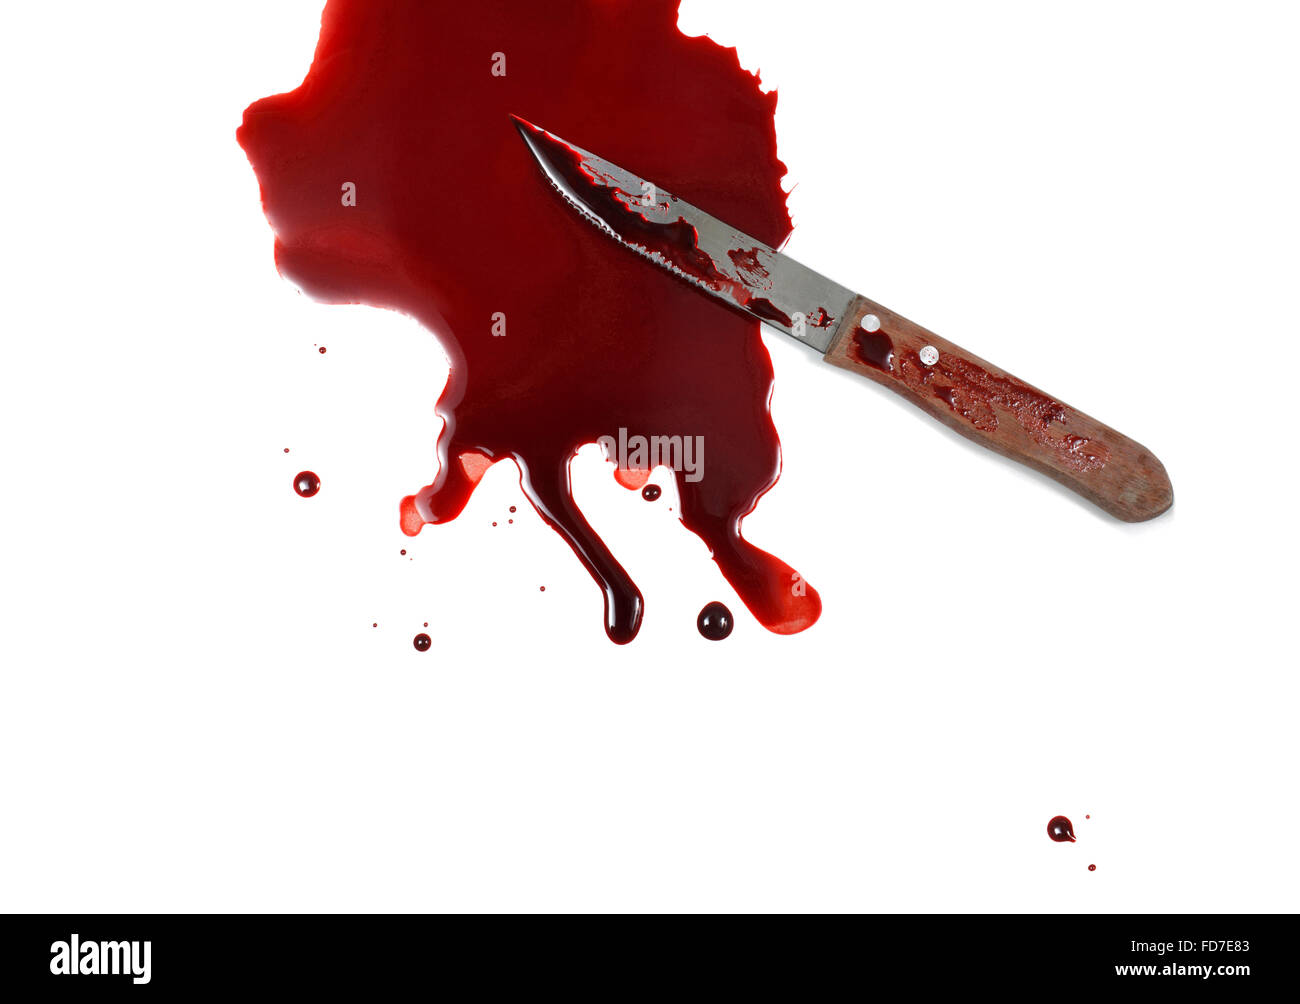 Studio shot of a knife and Blood on white background - Stock Image